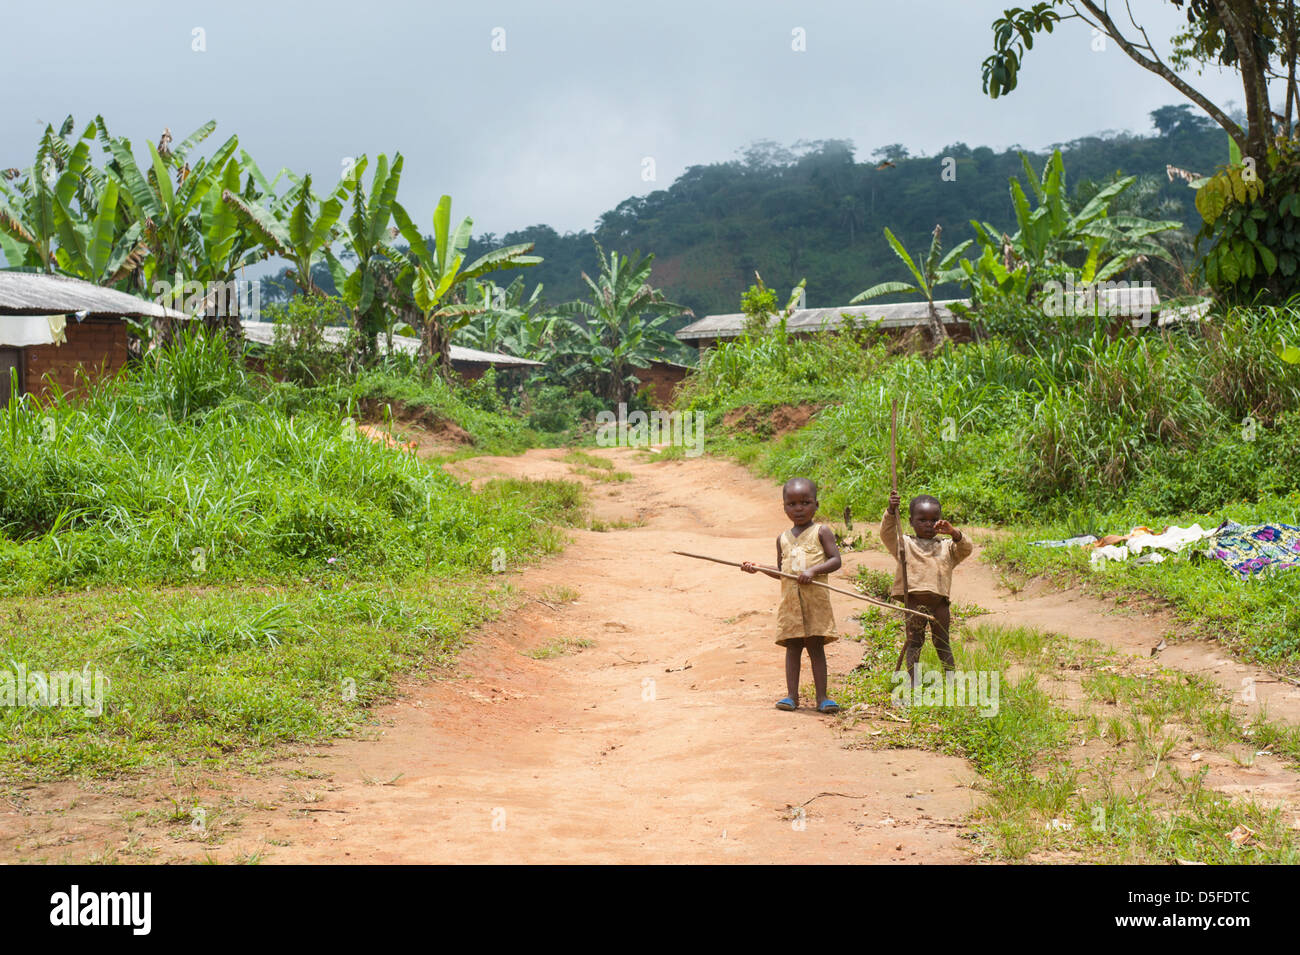 Two african children in rags on a dirt road outside of a village in Cameroon Africa - Stock Image